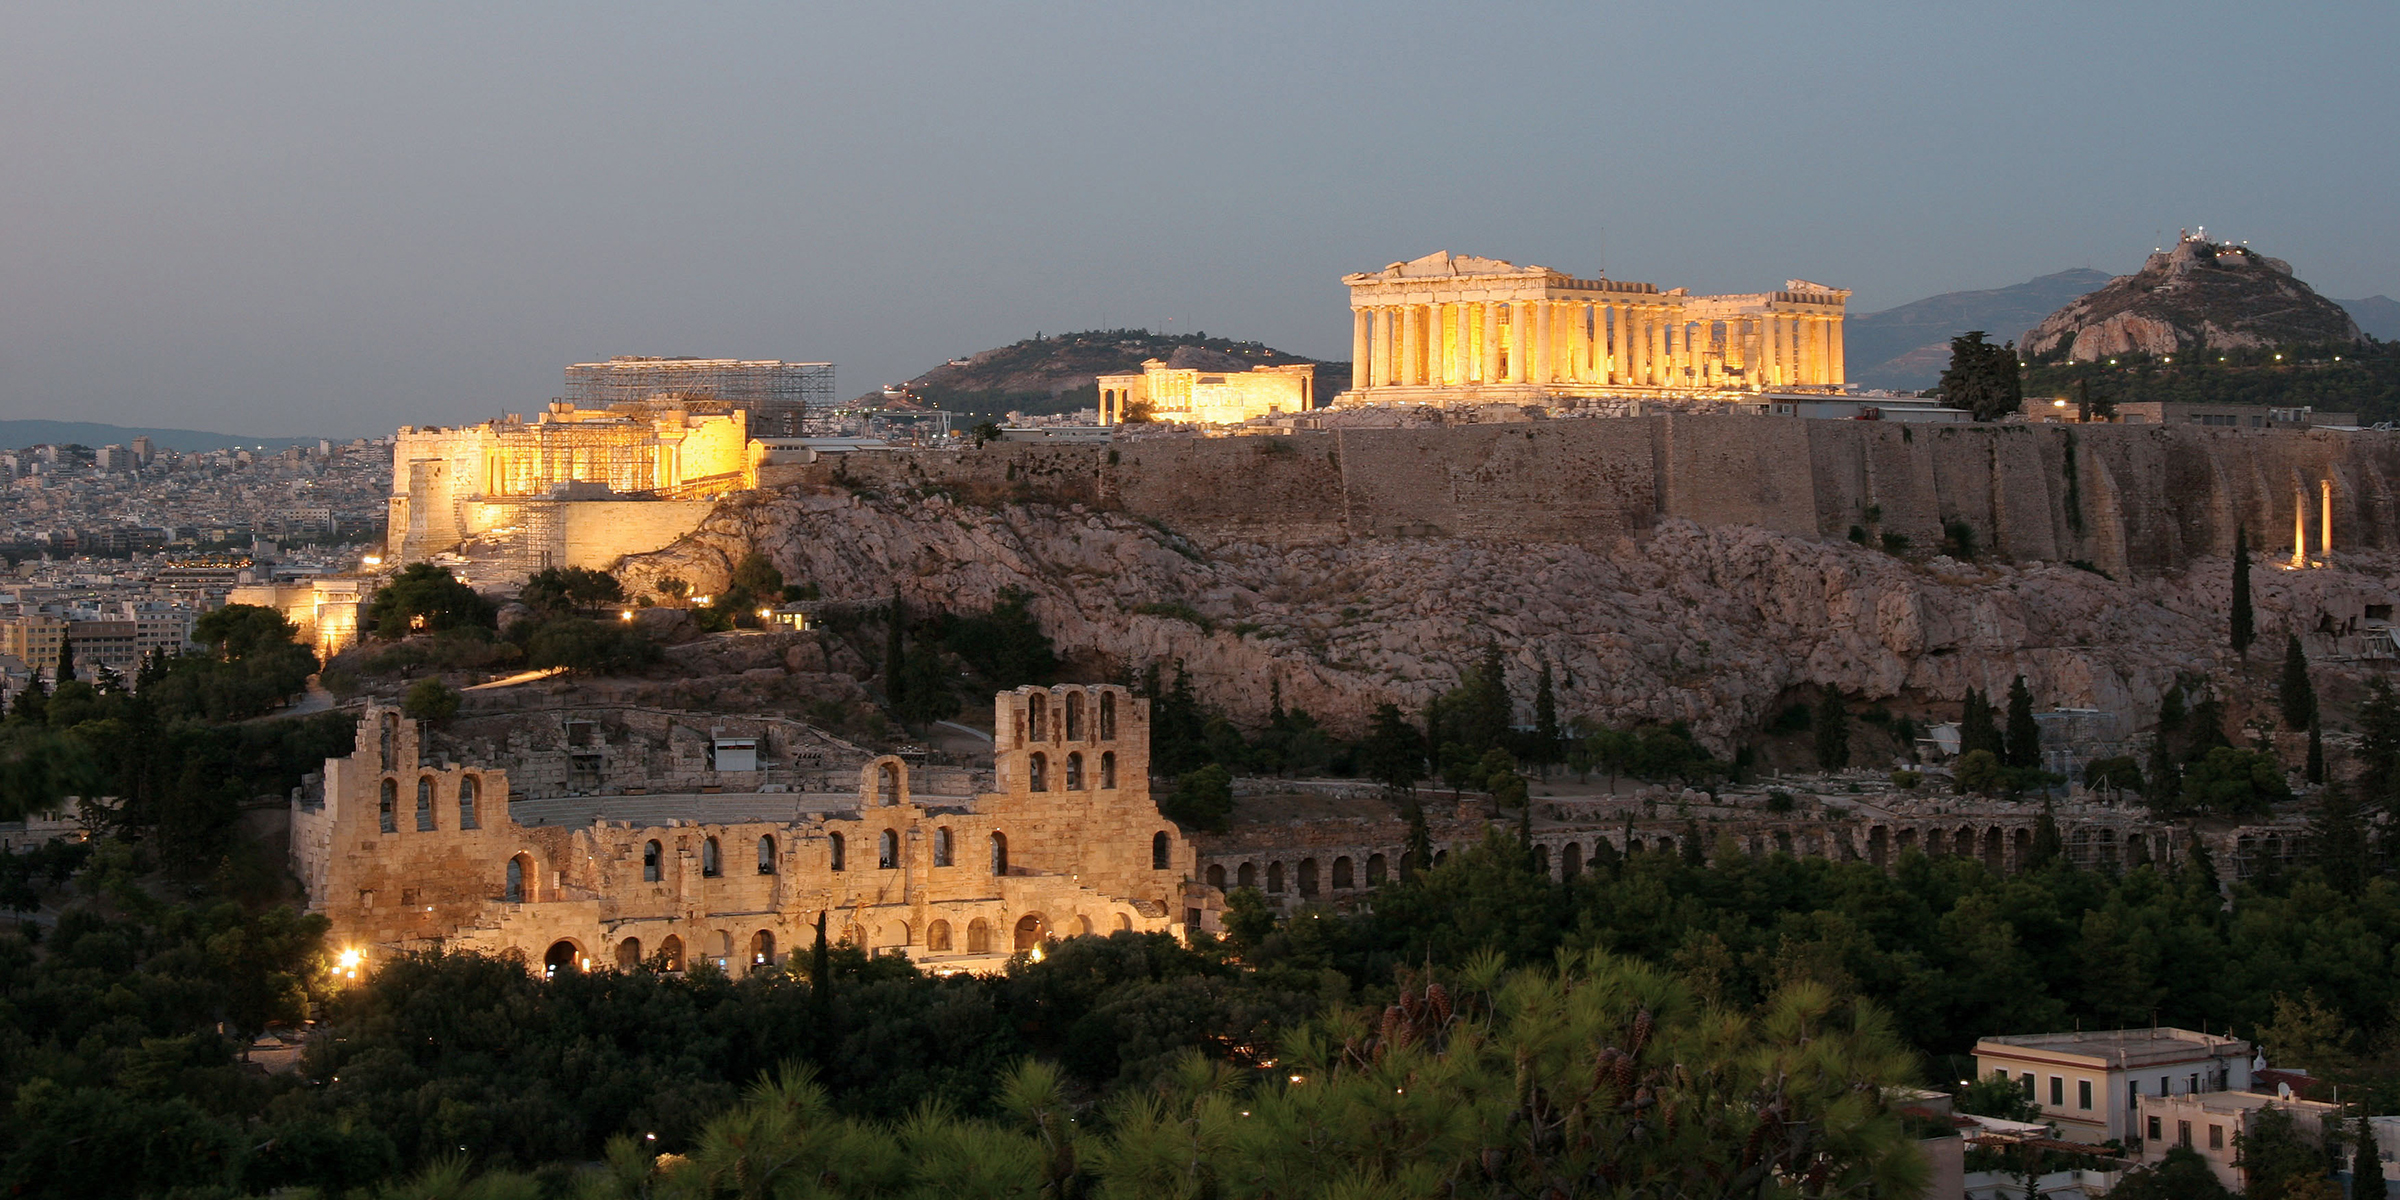 View of the Acropolis at night, Athens, c. 2010.